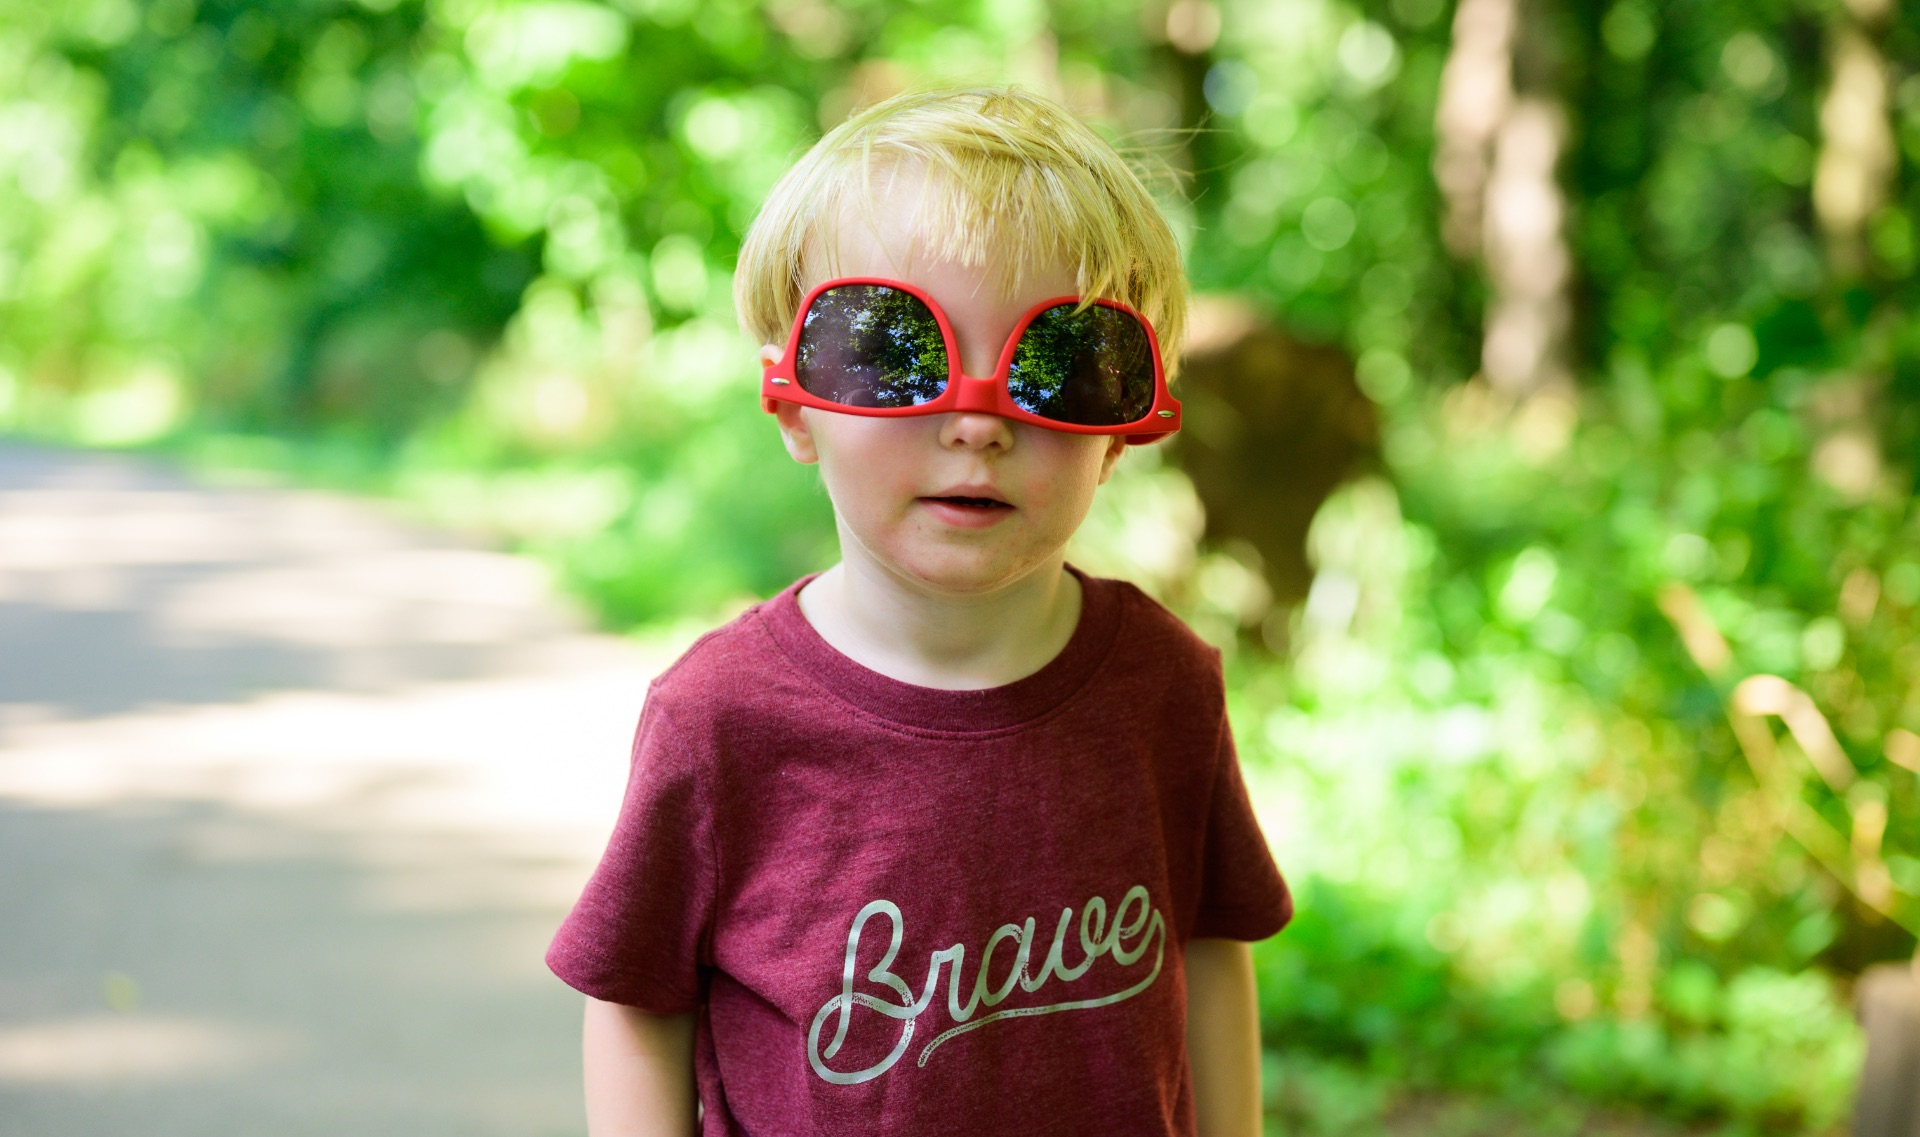 Jeremiah poses for the camera while wearing a pair of oversized sunglasses that are upside down on his face.